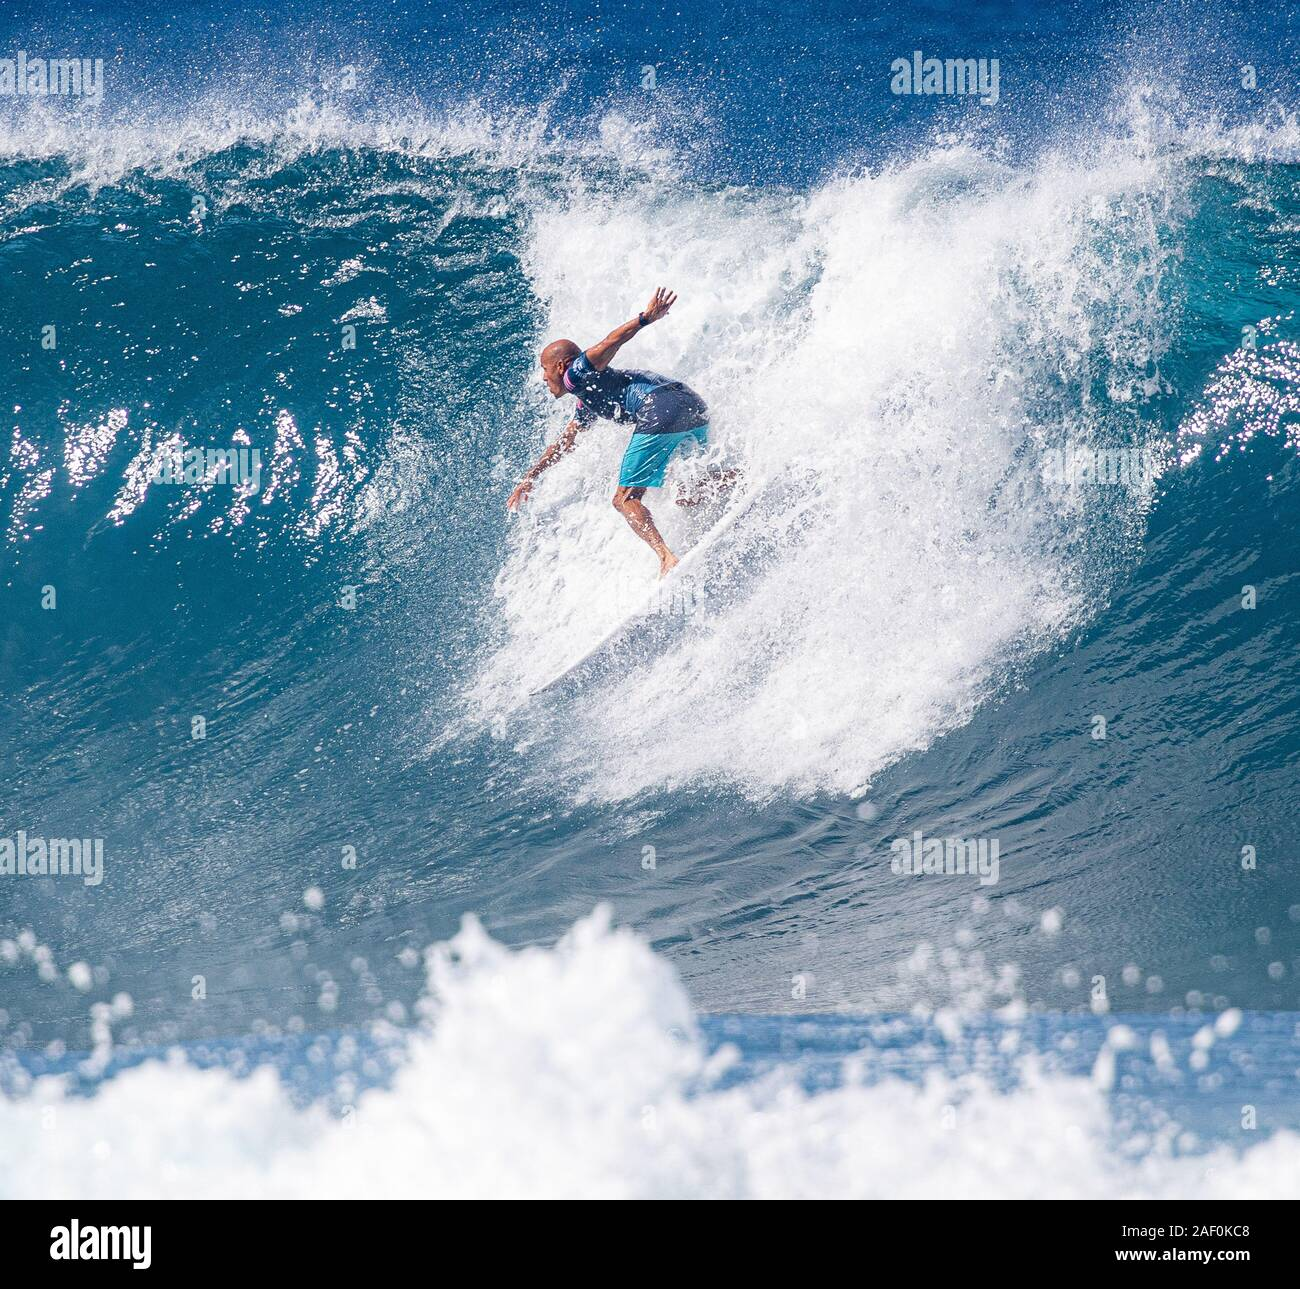 Haleiwa Hi Usa 11th Dec 2019 Kelly Slater Pictured During Heat 8 In The Round Of 32 Where He Surfed A Perfect 10 Wave At The Billabong Pipe Masters 2019 Tournament In Entrances on haleiwa road and haleiwa loop. alamy